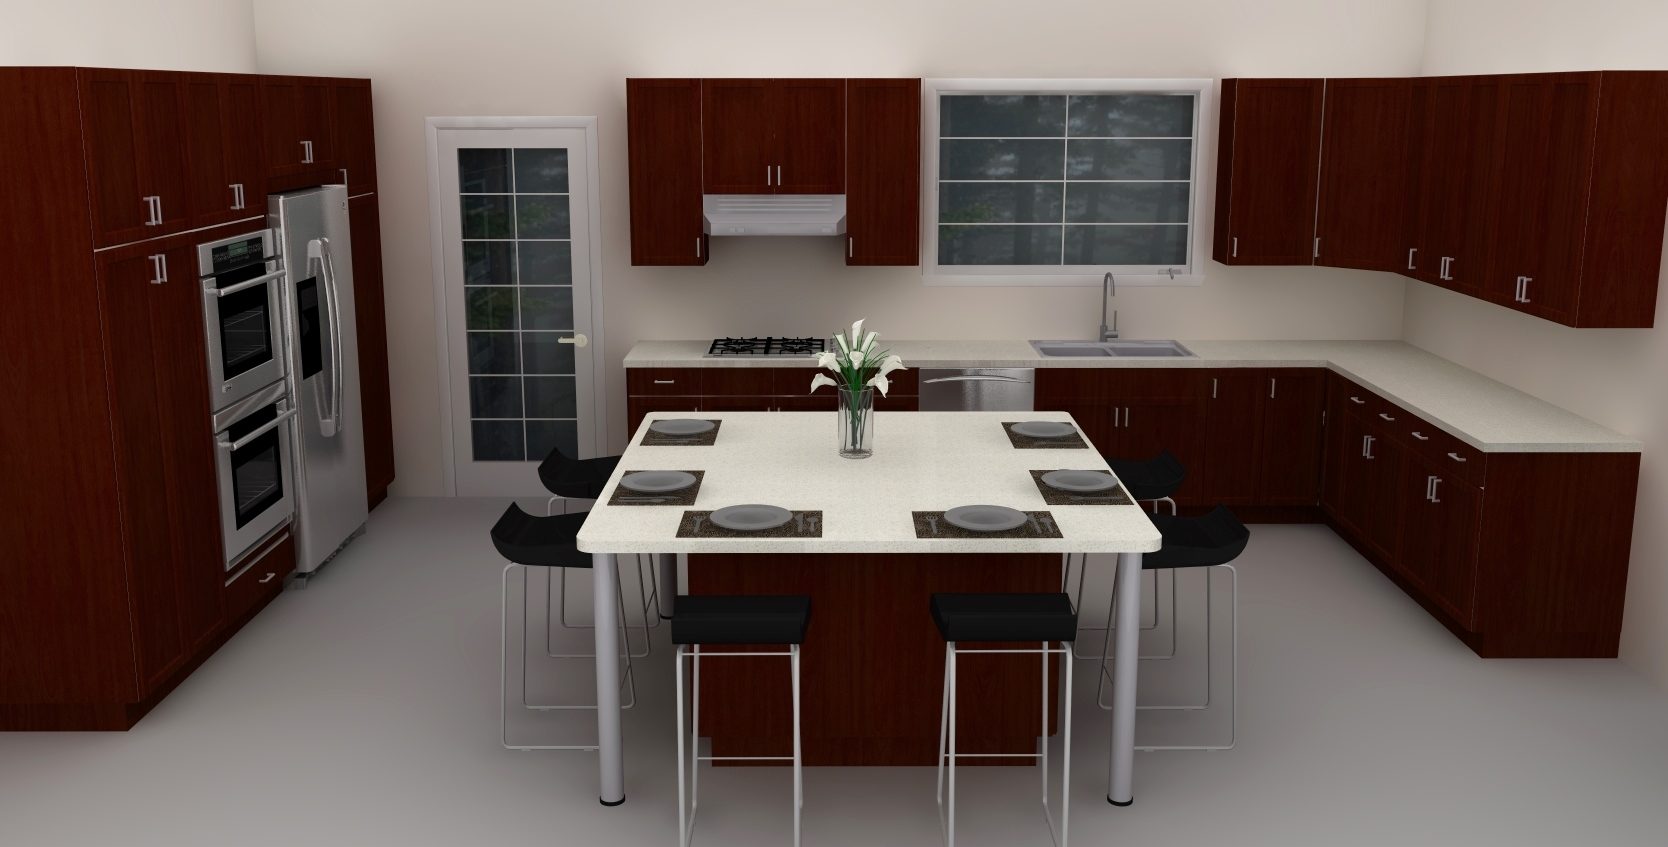 large ikea kitchen island can also be turned into a dining room table